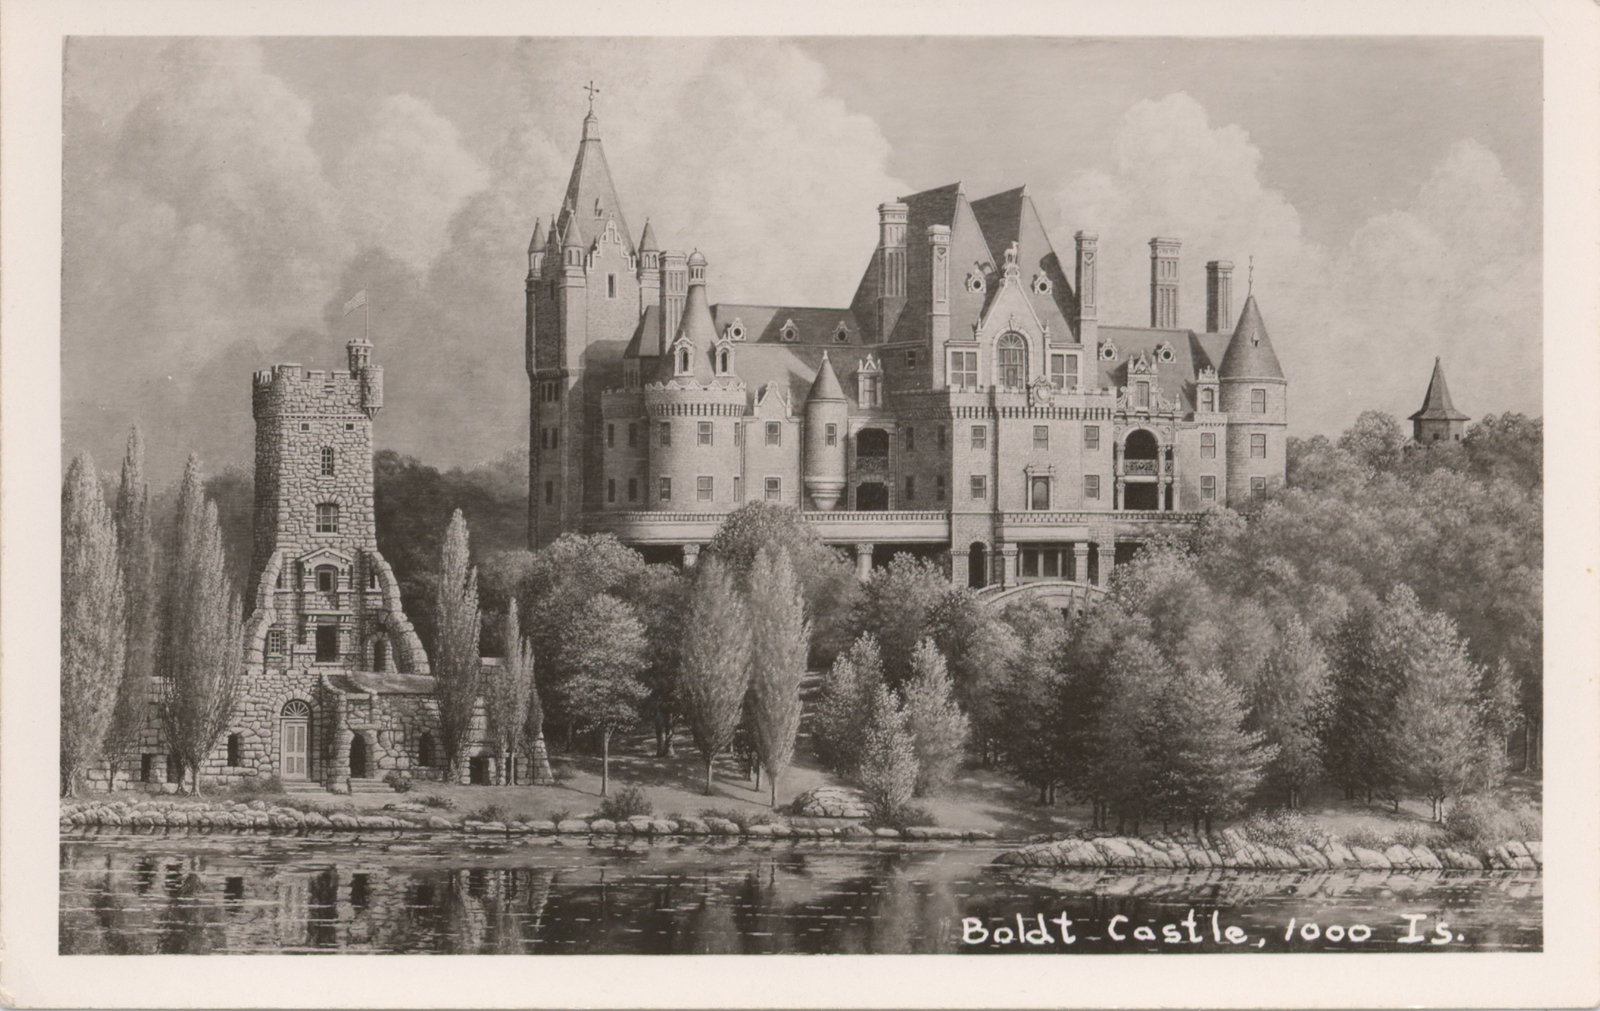 Artist's Rendering of Boldt Castle